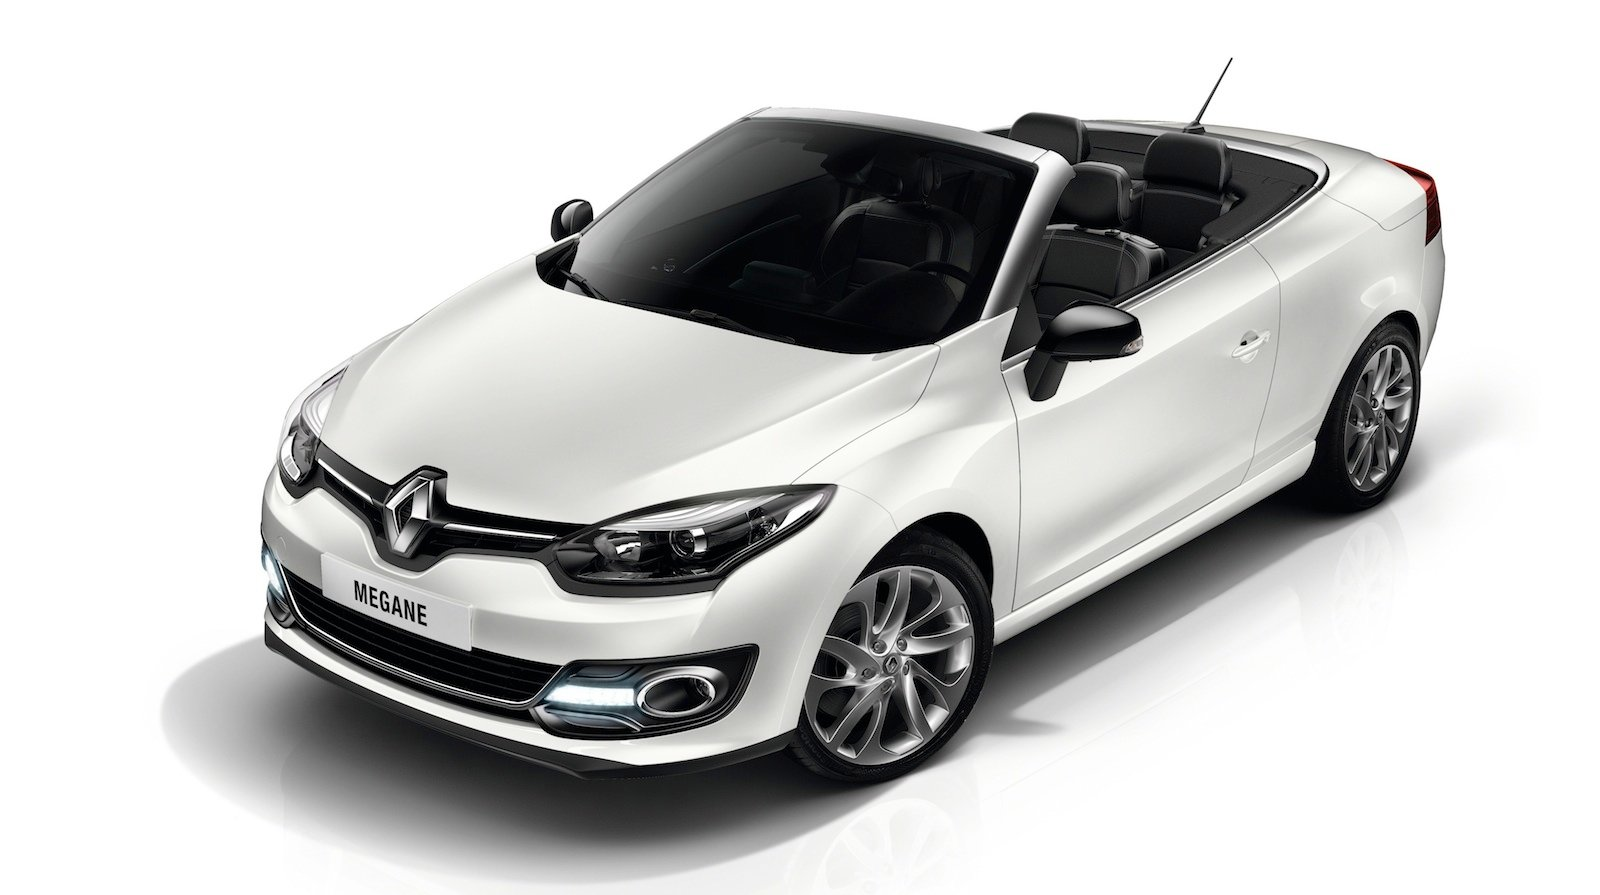 2014 renault megane cc facelift revealed photos 1 of 9. Black Bedroom Furniture Sets. Home Design Ideas